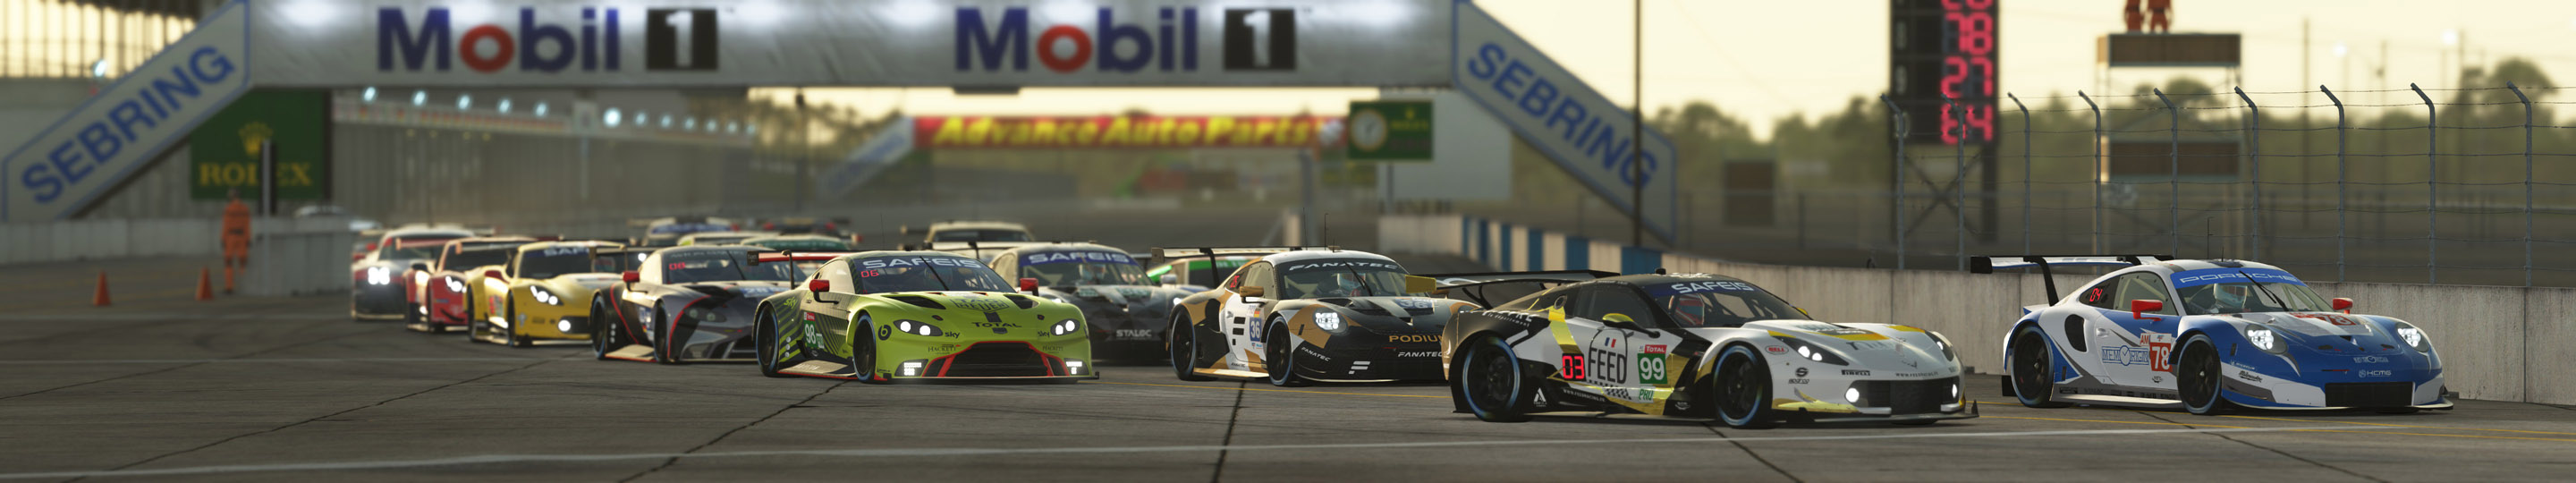 1 rFACTOR 2 CORVETTE C8 & FERRARI GTE at SEBRING copy.jpg